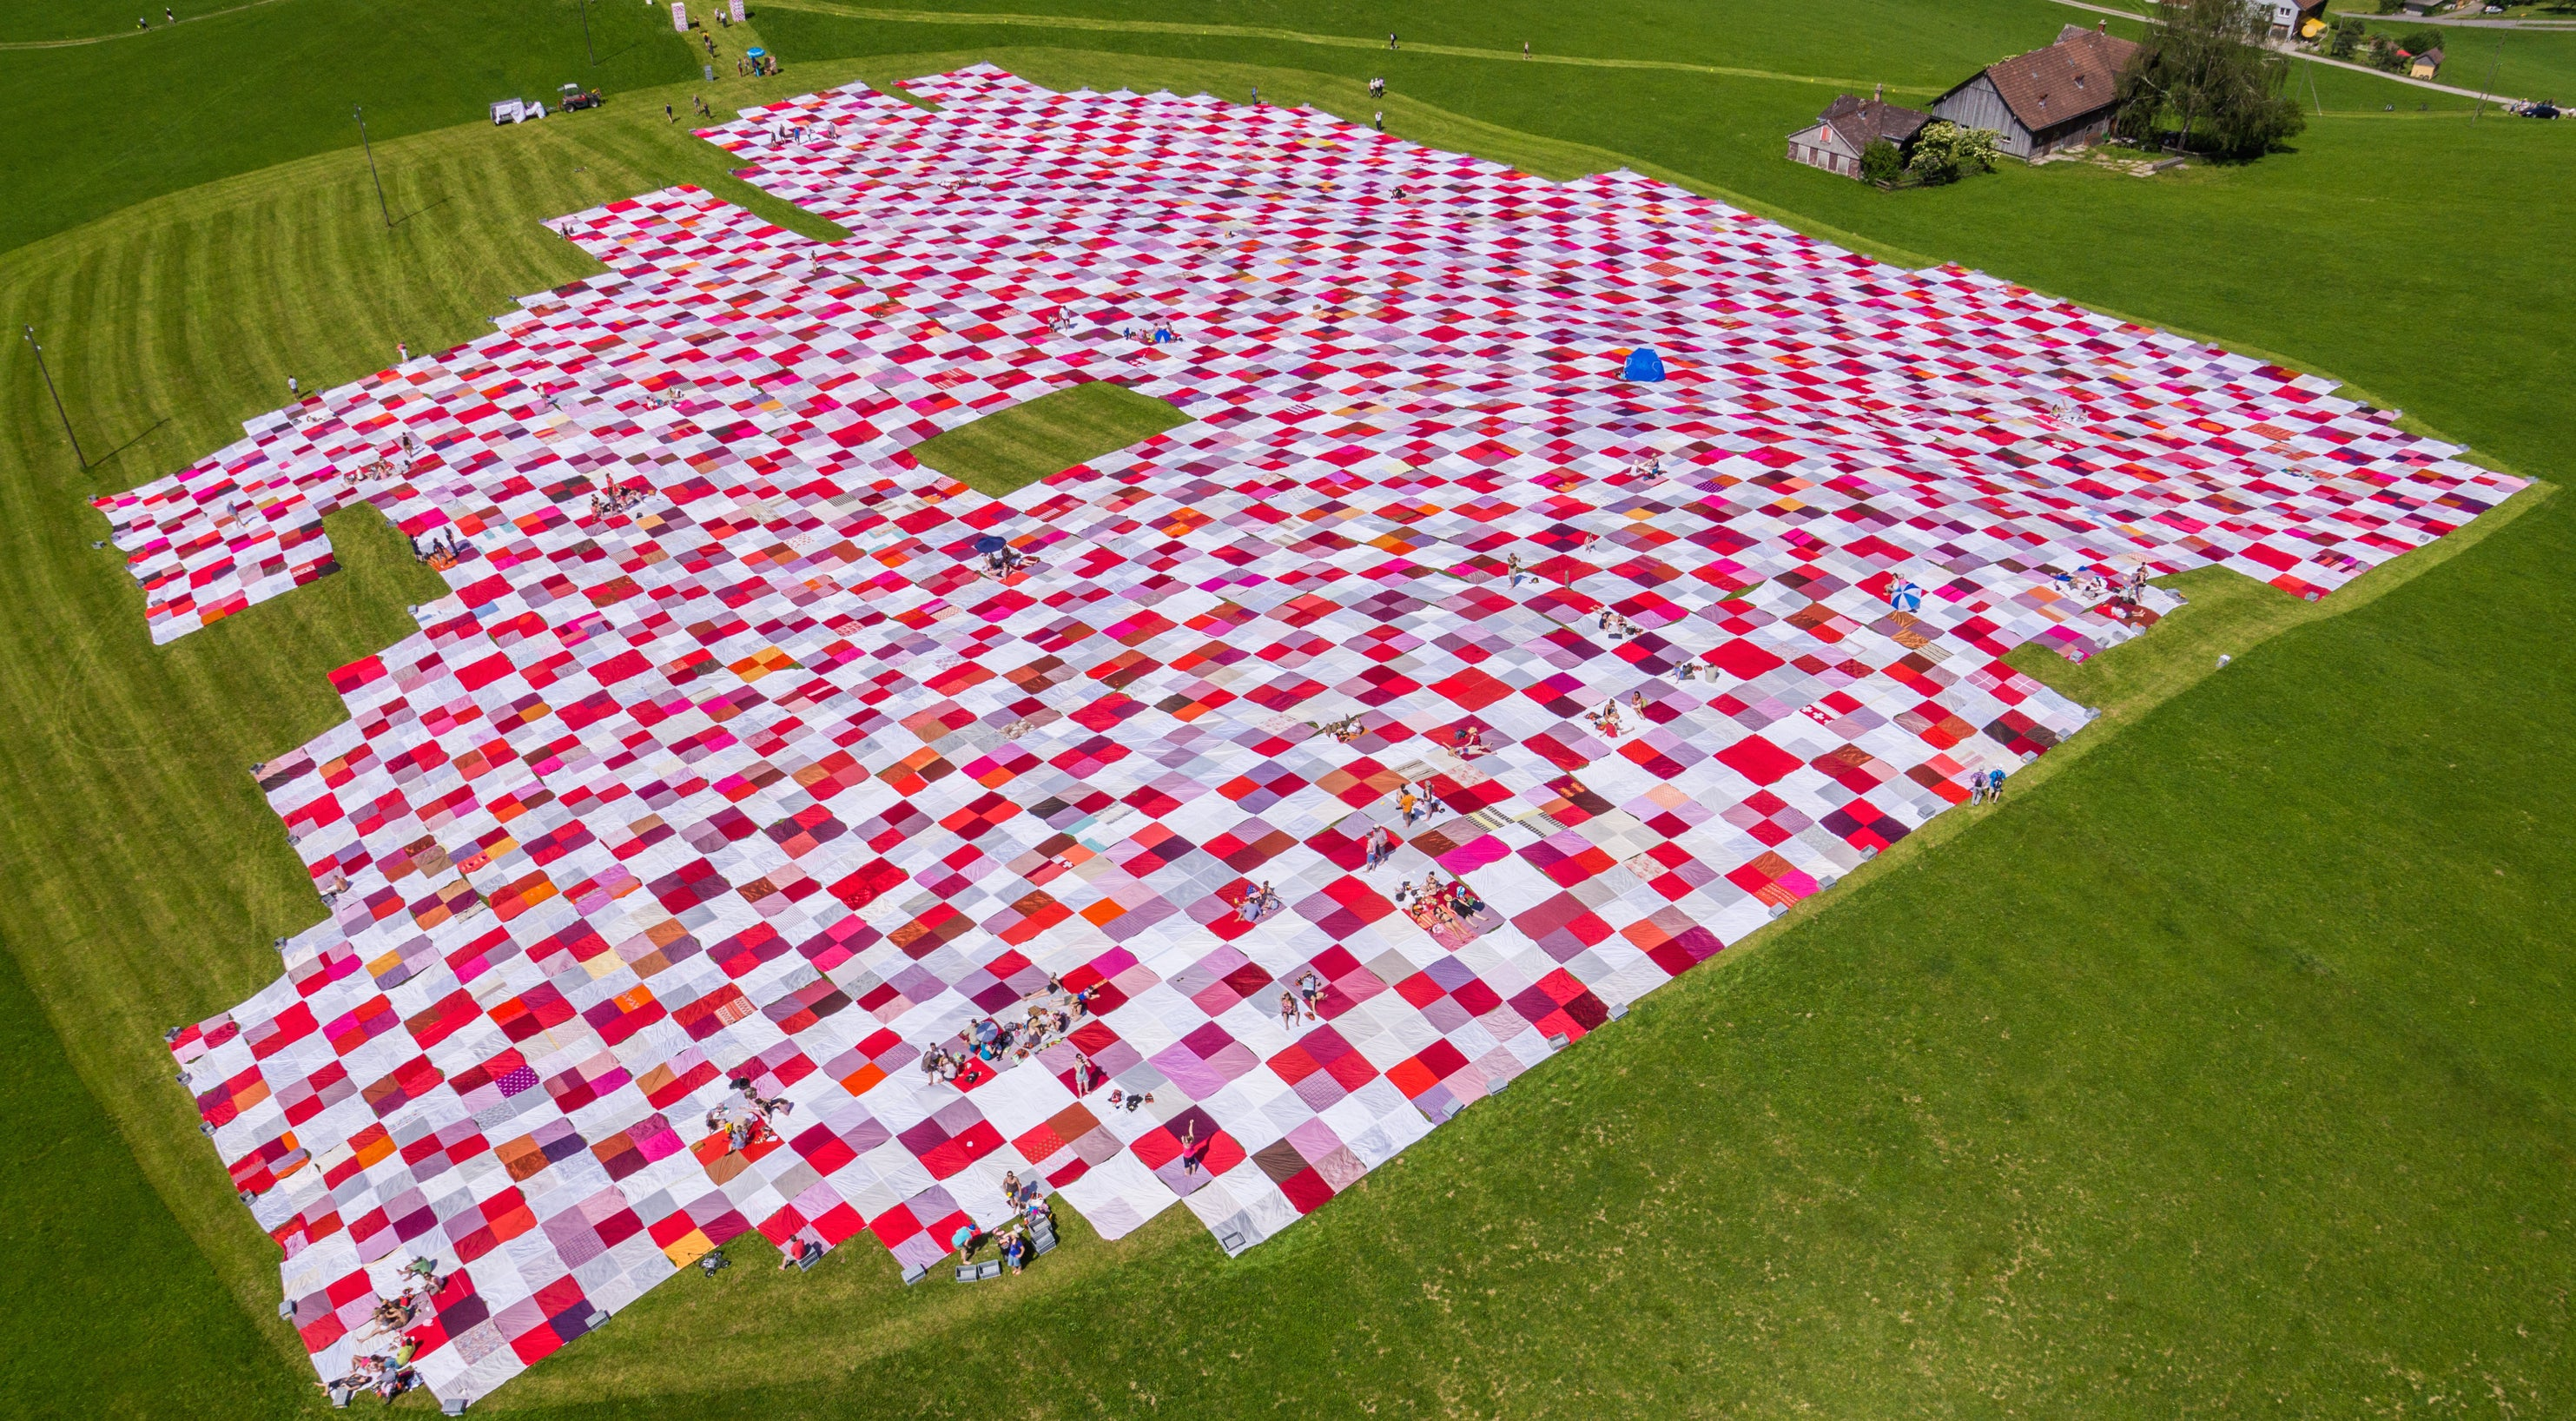 The world 39 s biggest picnic blanket is growing in the swiss for Au maison picnic blanket